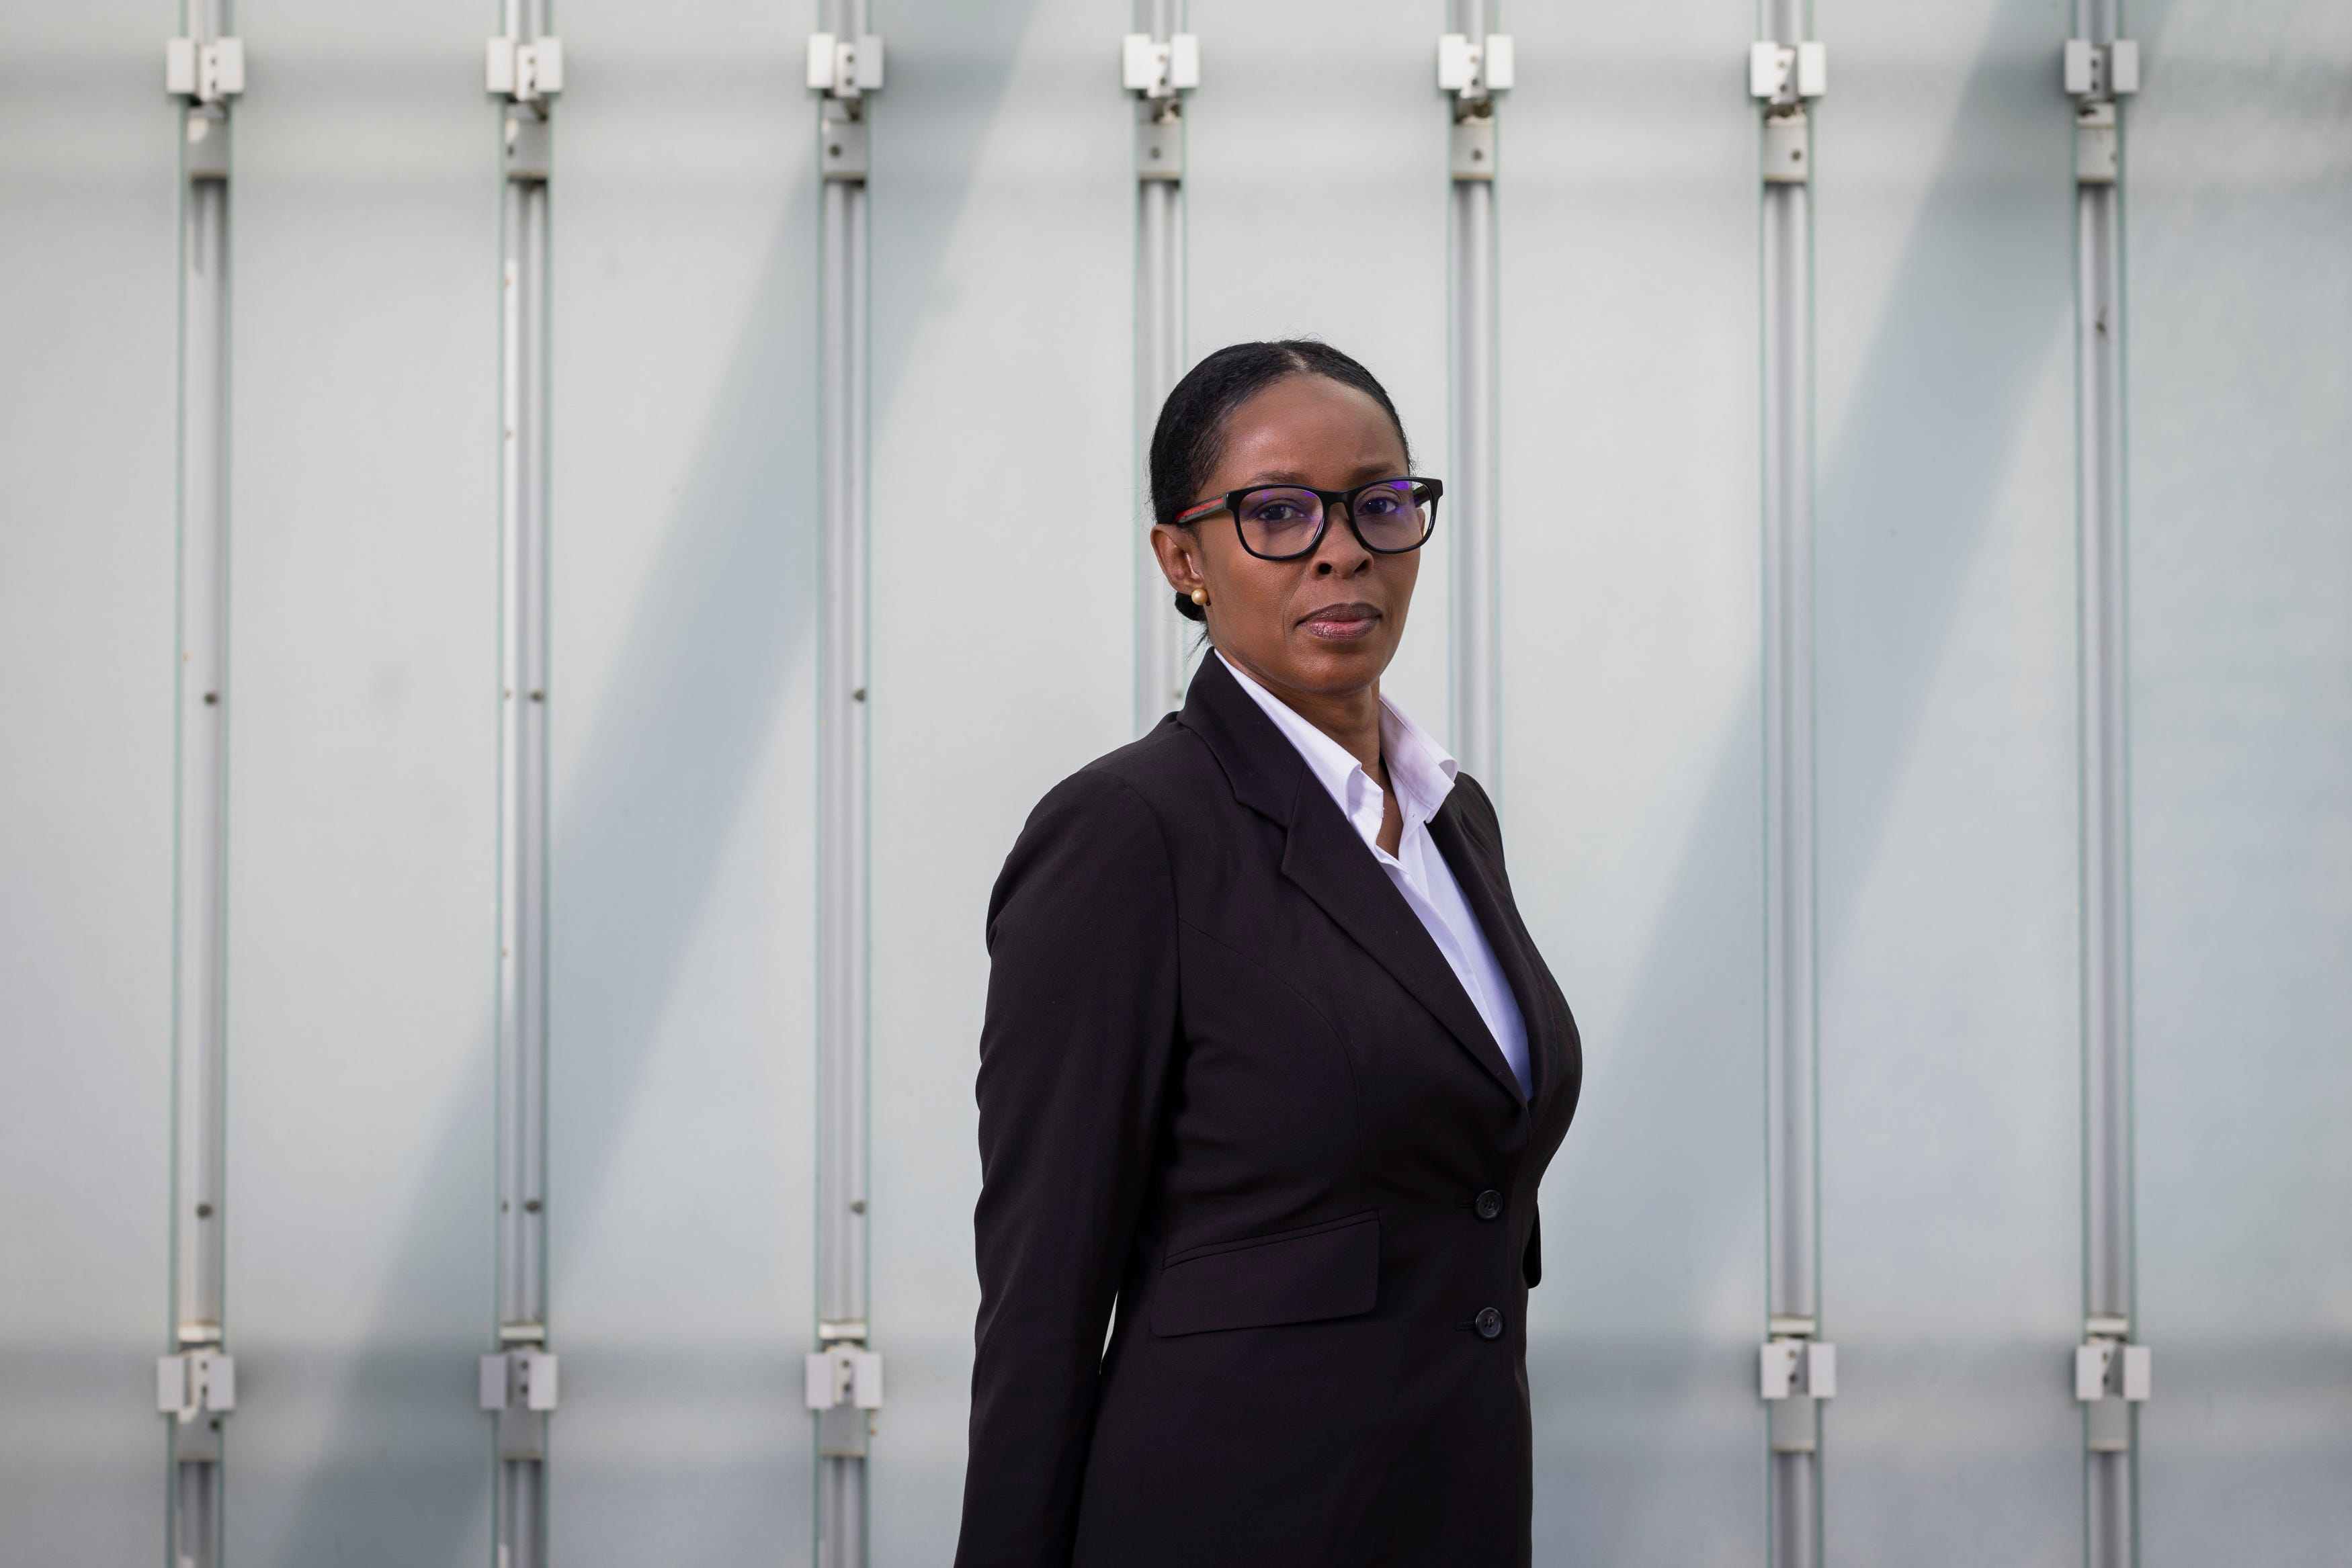 Sharon Lewis, photographed in downtown Baton Rouge on April 4, 2021, says LSU Executive Deputy Athletic Director Verge Ausberry tried to sabotage her leadership of LSU's alumni association.